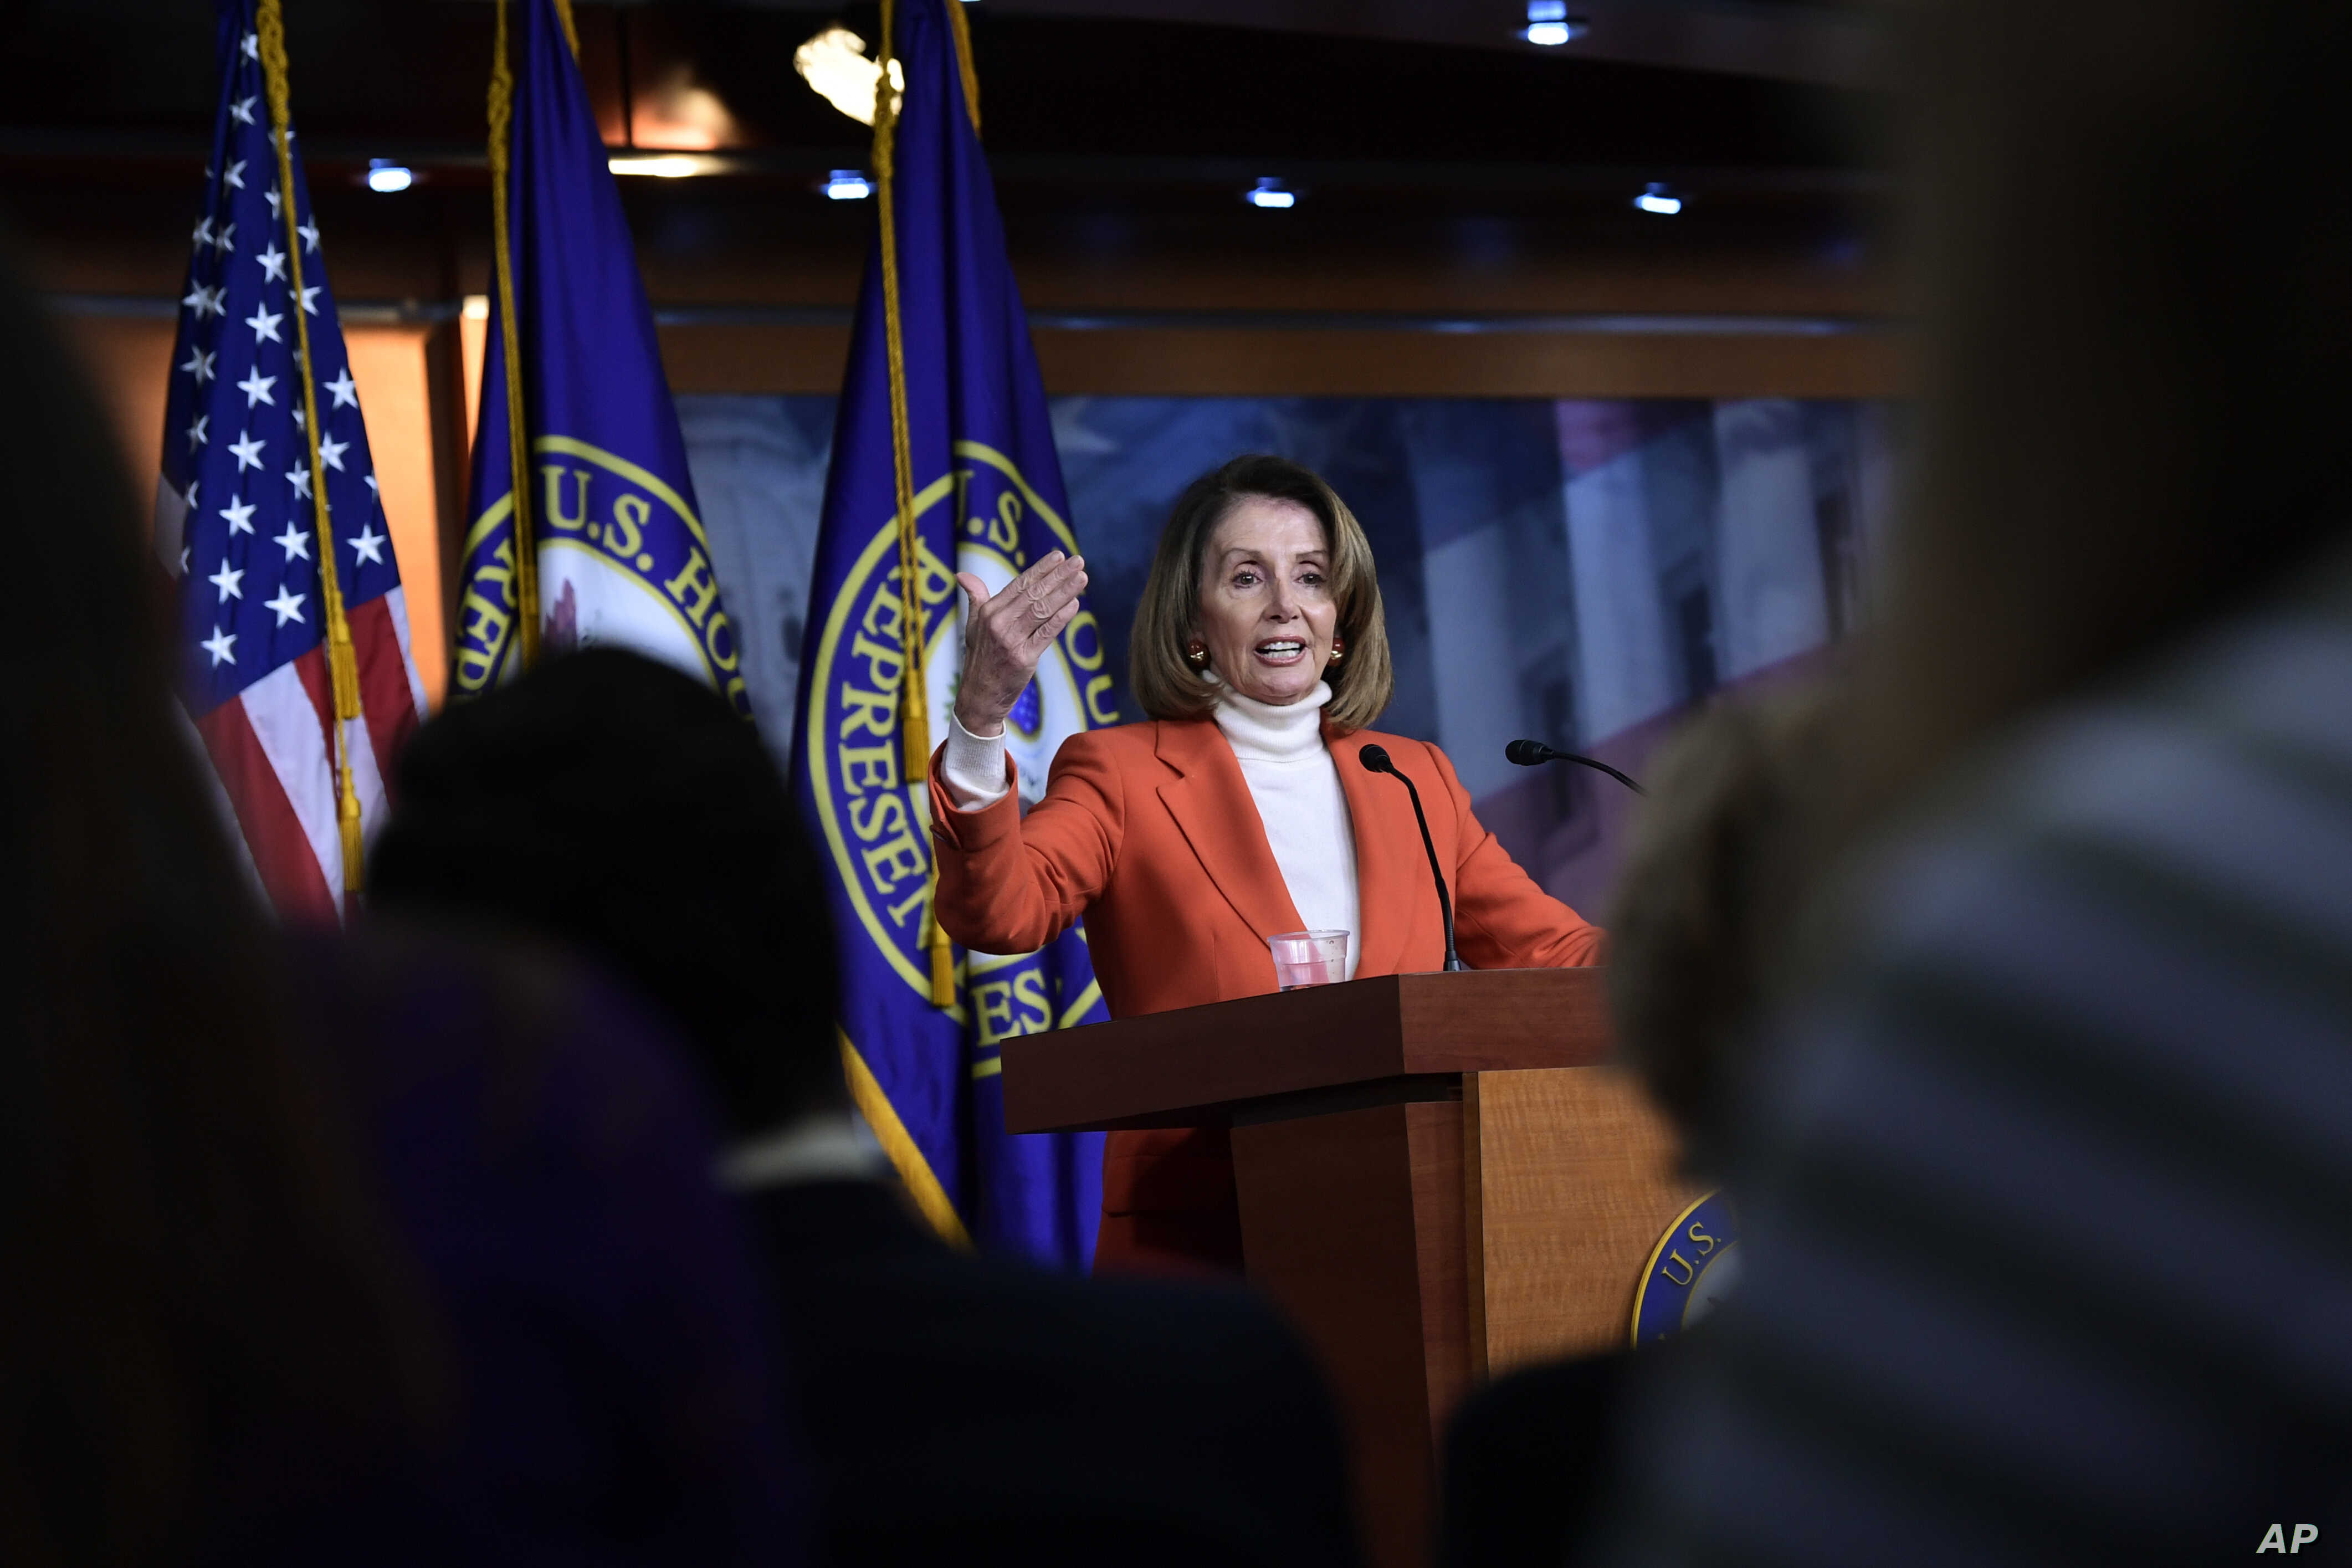 House Minority Leader Nancy Pelosi of Calif., speaks during a news conference on Capitol Hill in Washington, Nov. 15, 2018.